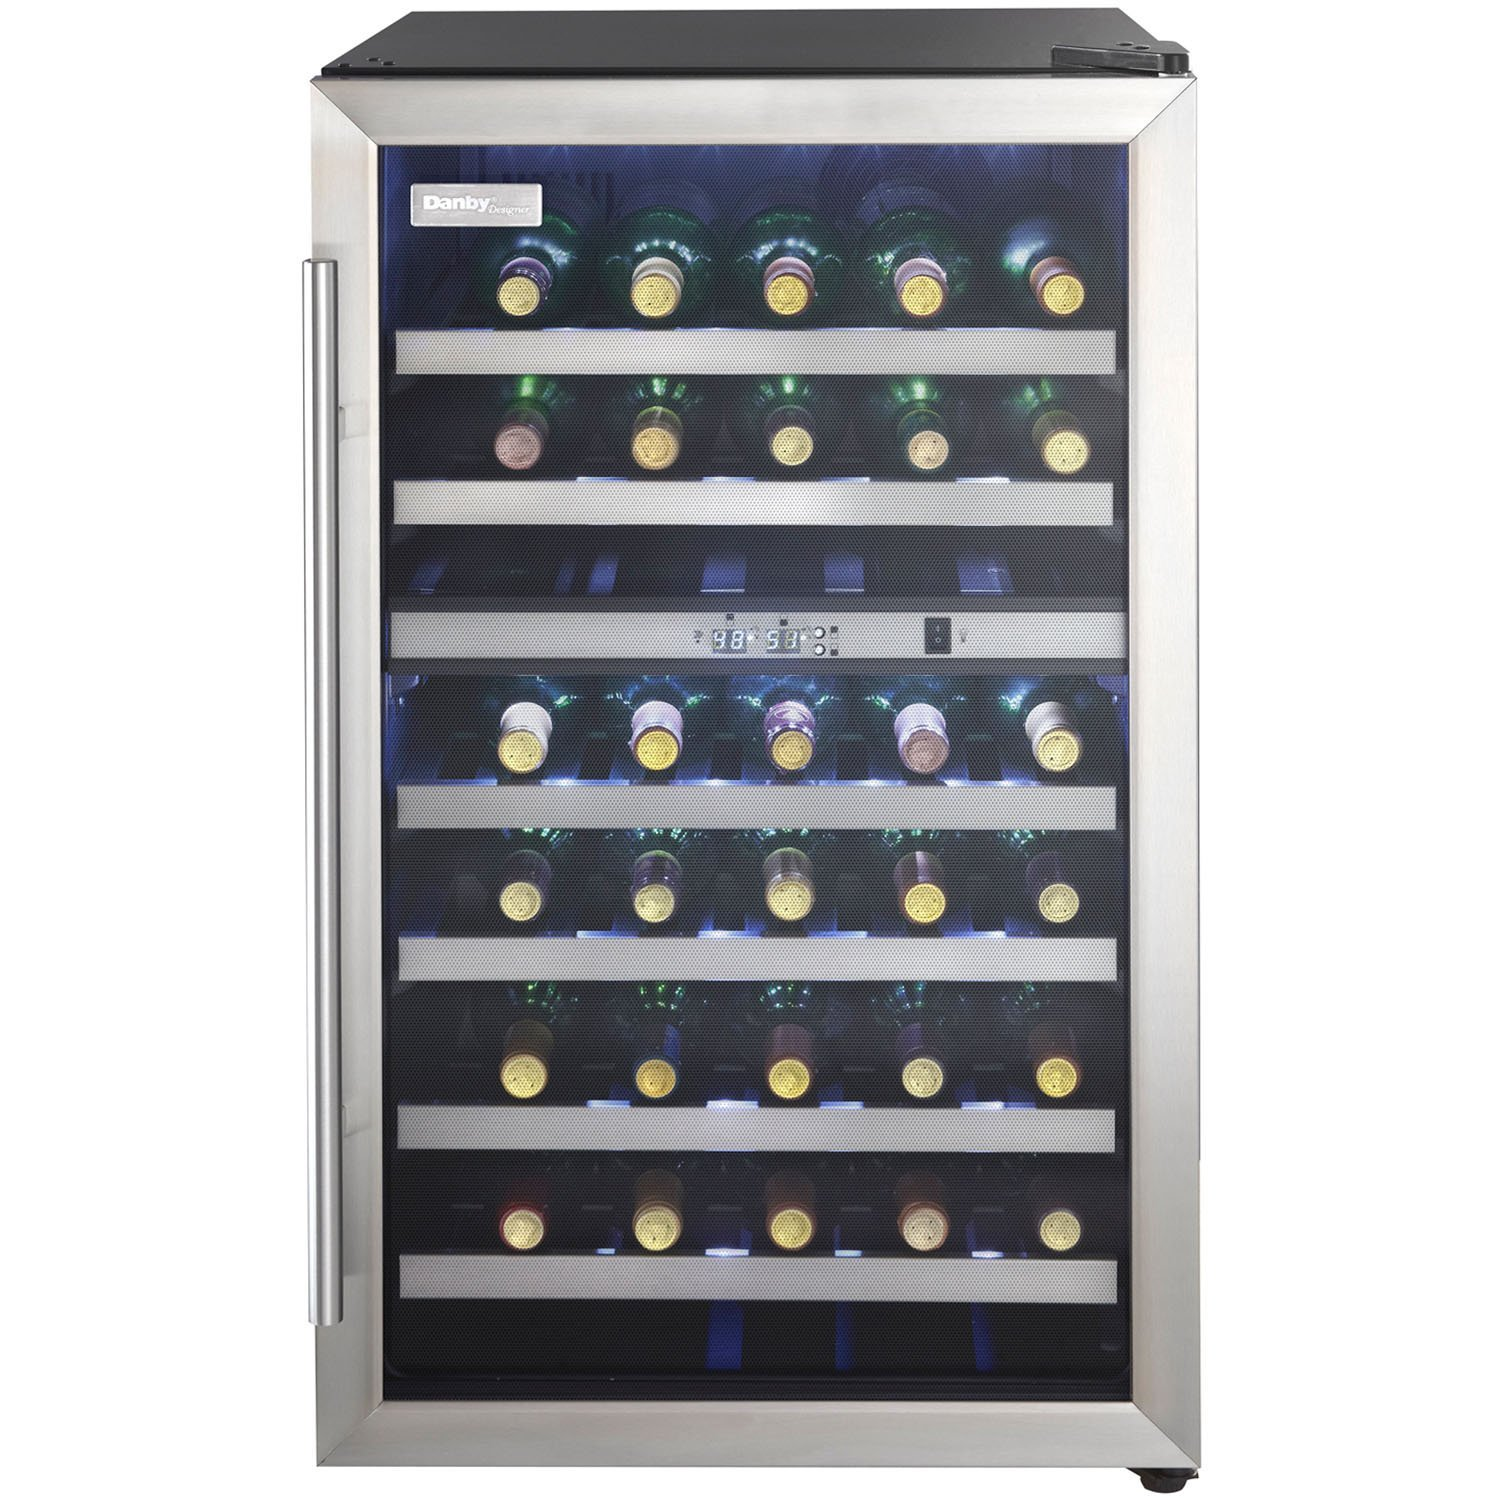 Danby dual zone wine cooler decor ideasdecor ideas for Decor wine cooler